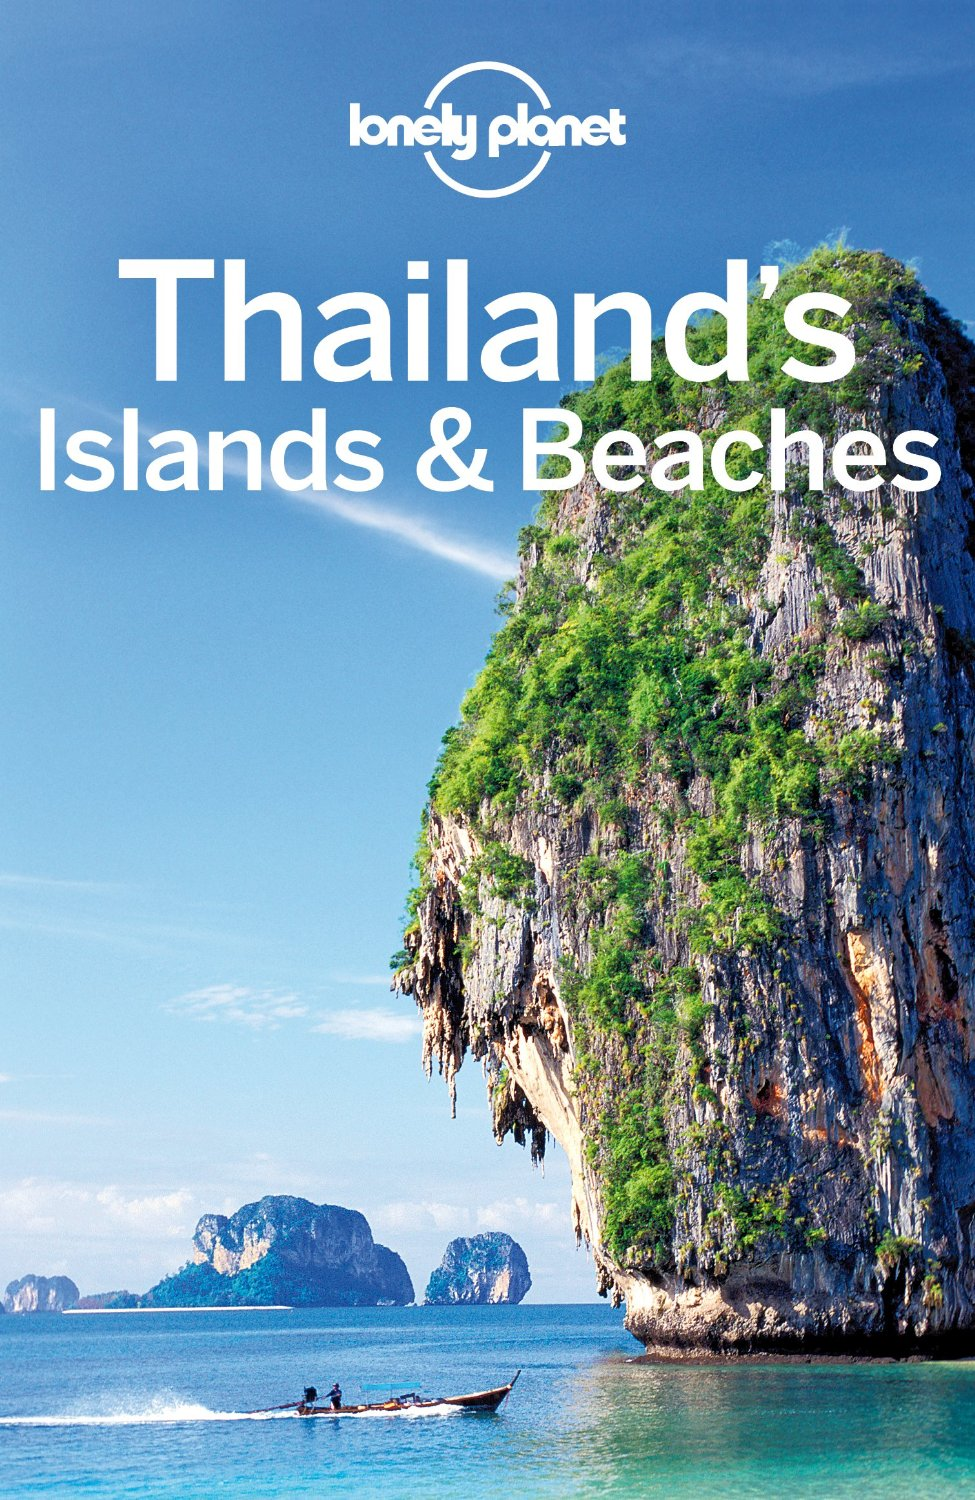 Lonely Planet Thailand's Islands & Beaches (Travel Guide) free download